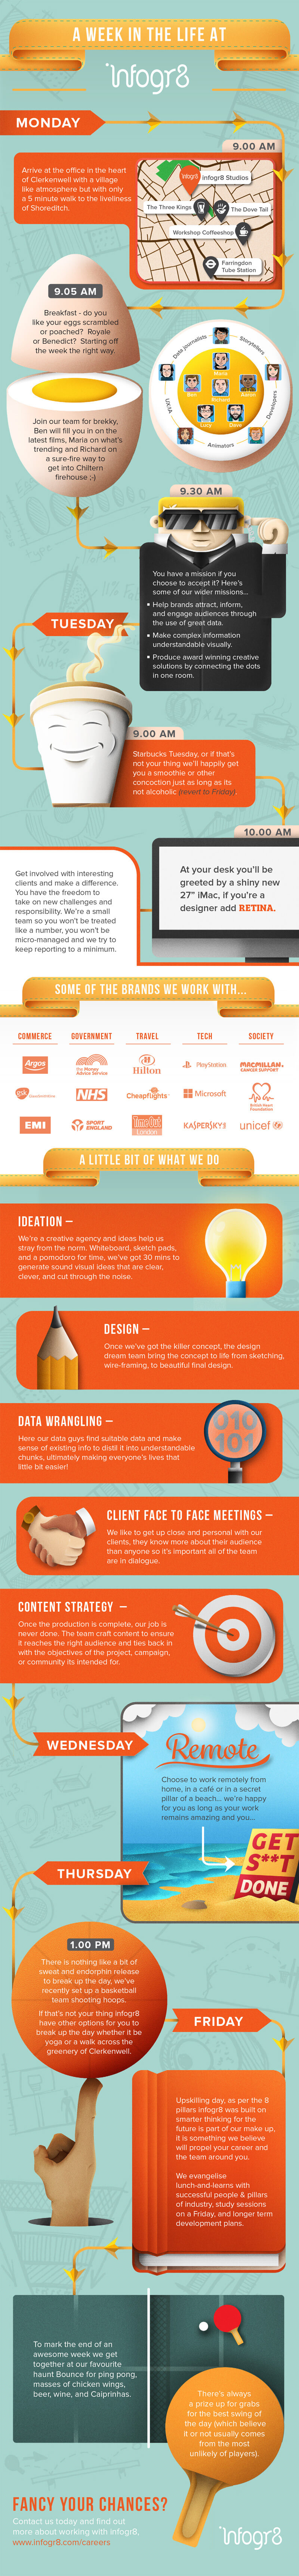 A week in the life at infogr8